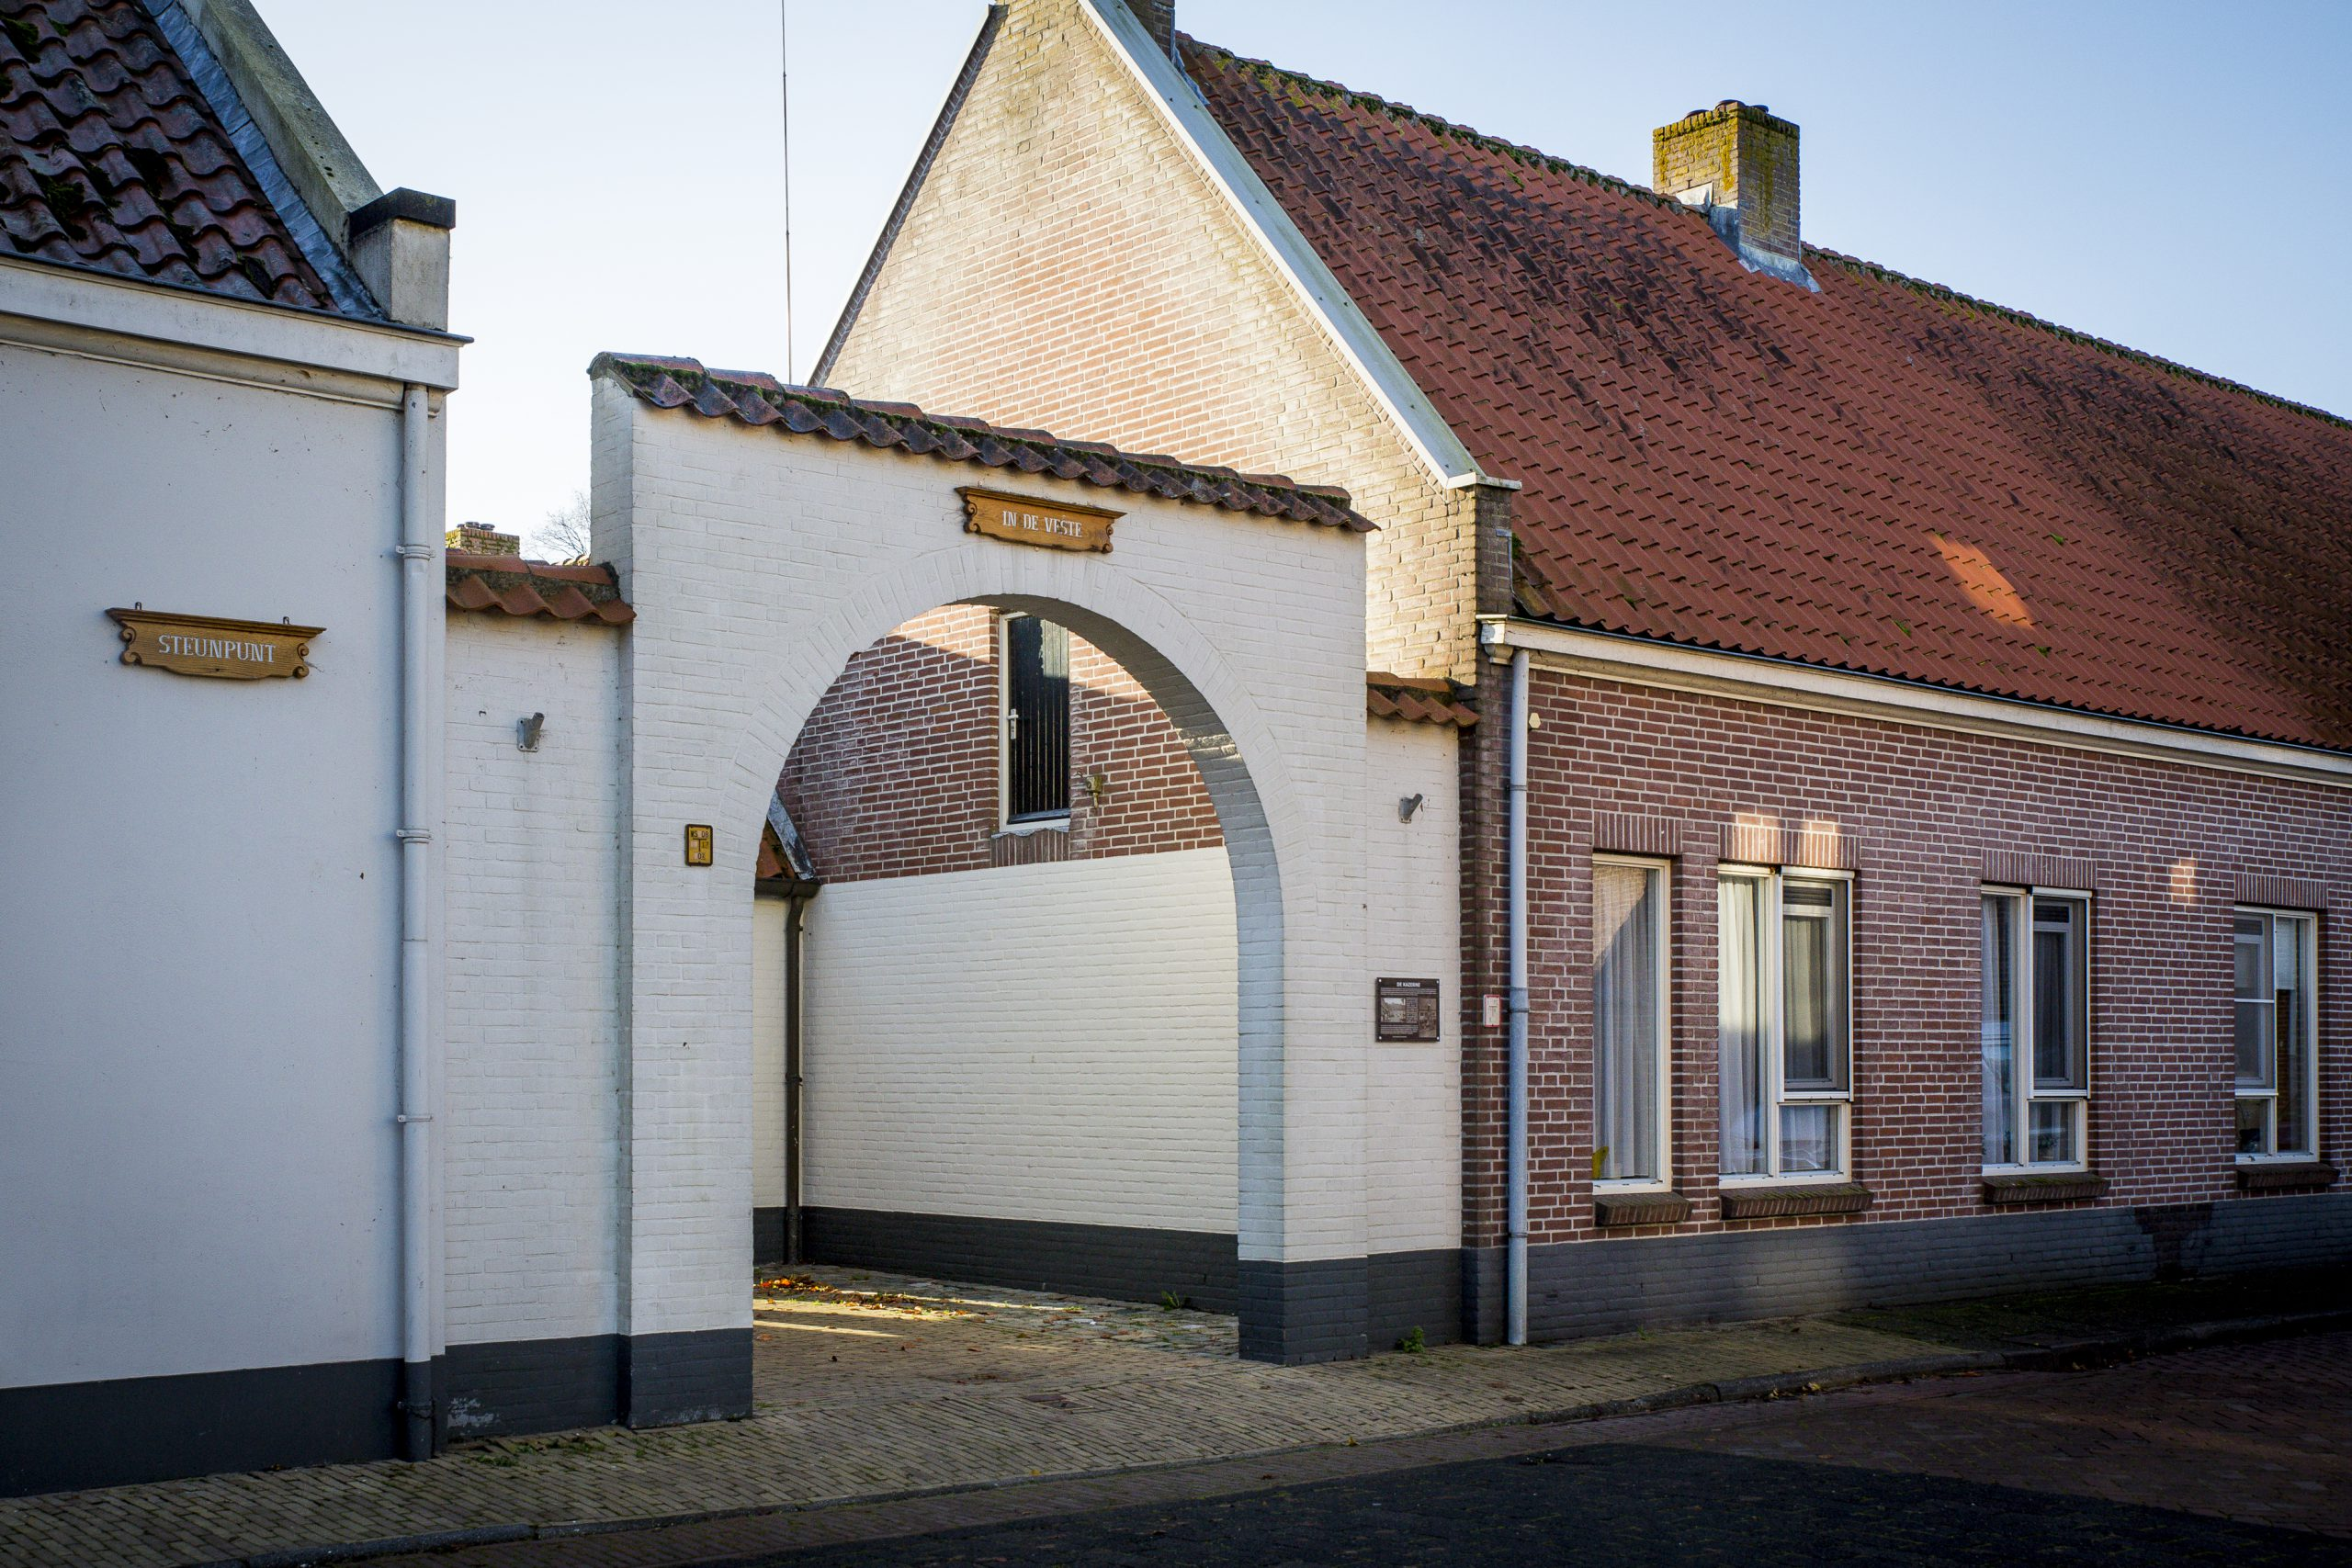 Surplus In de Veste Willemstad